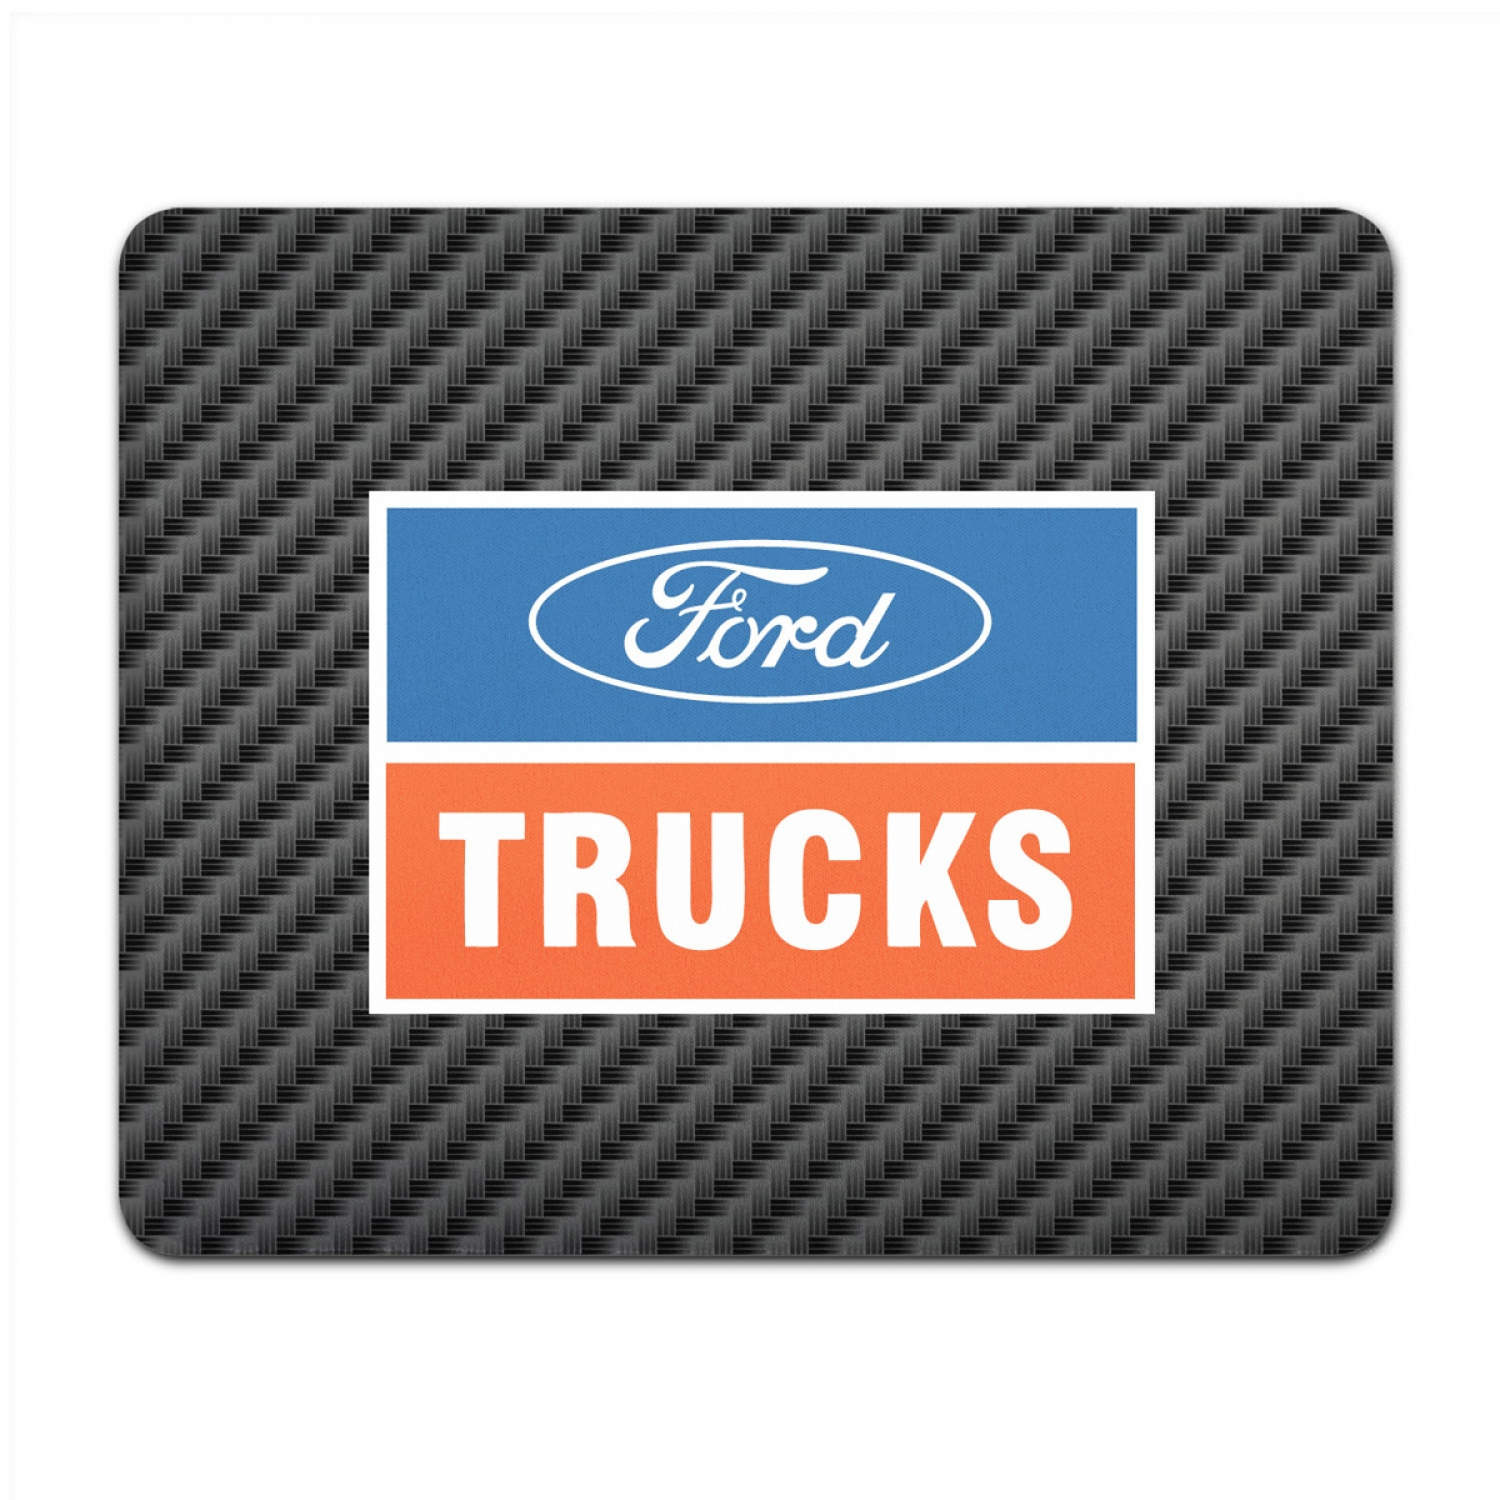 Ford Trucks Black Carbon Fiber Texture Graphic PC Mouse Pad